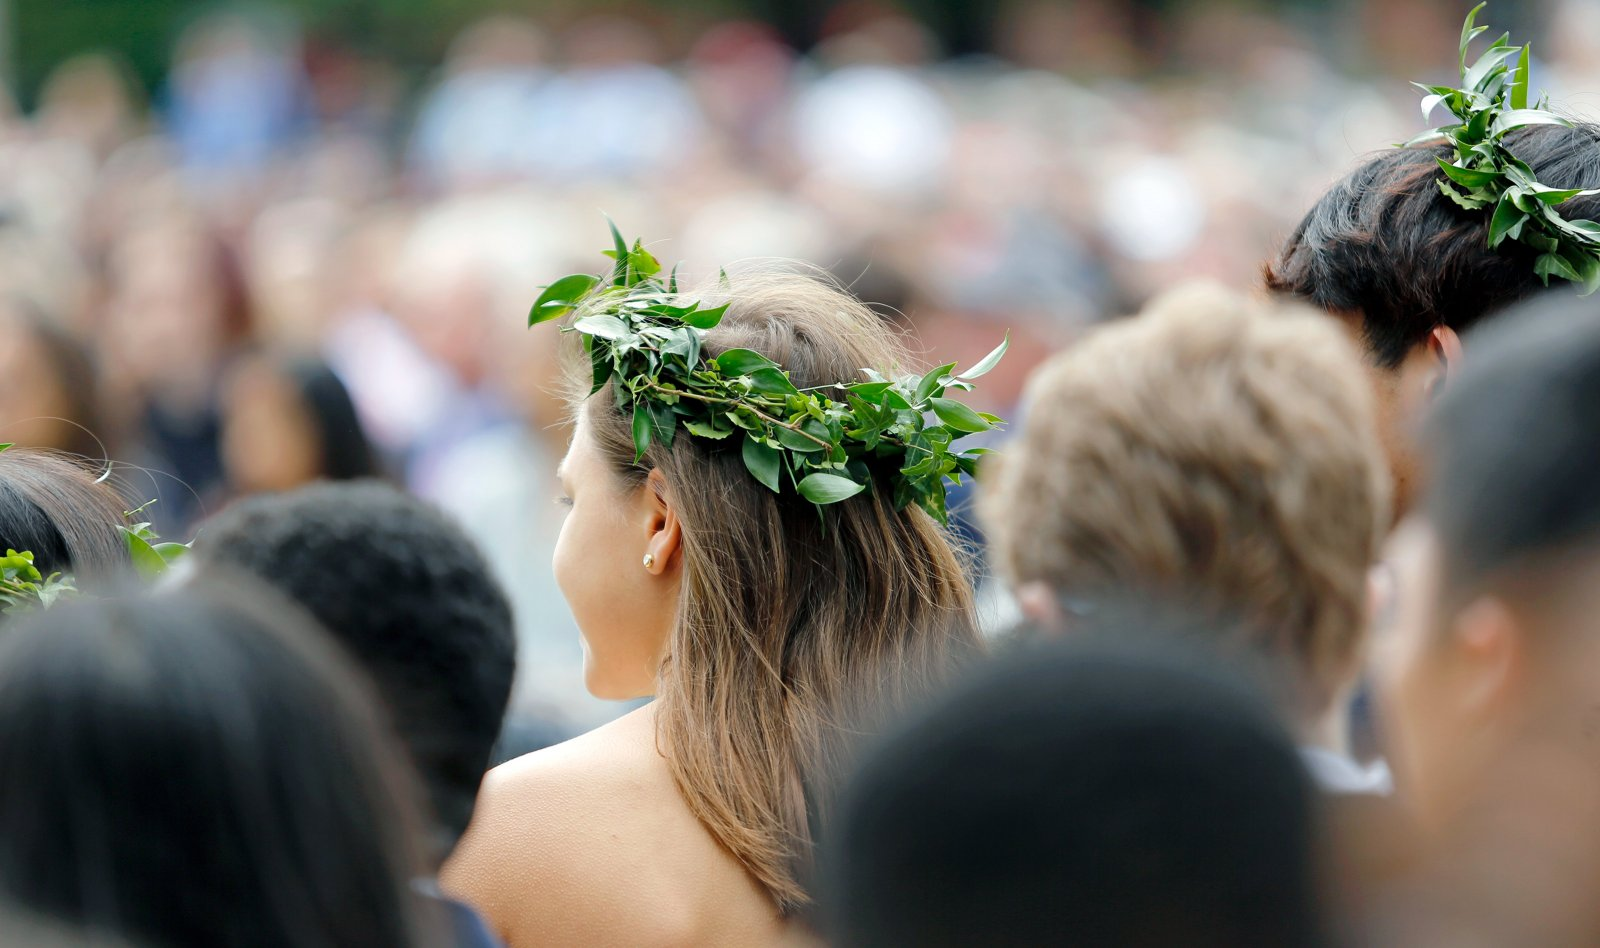 Exeter students wearing wreaths at graduation.